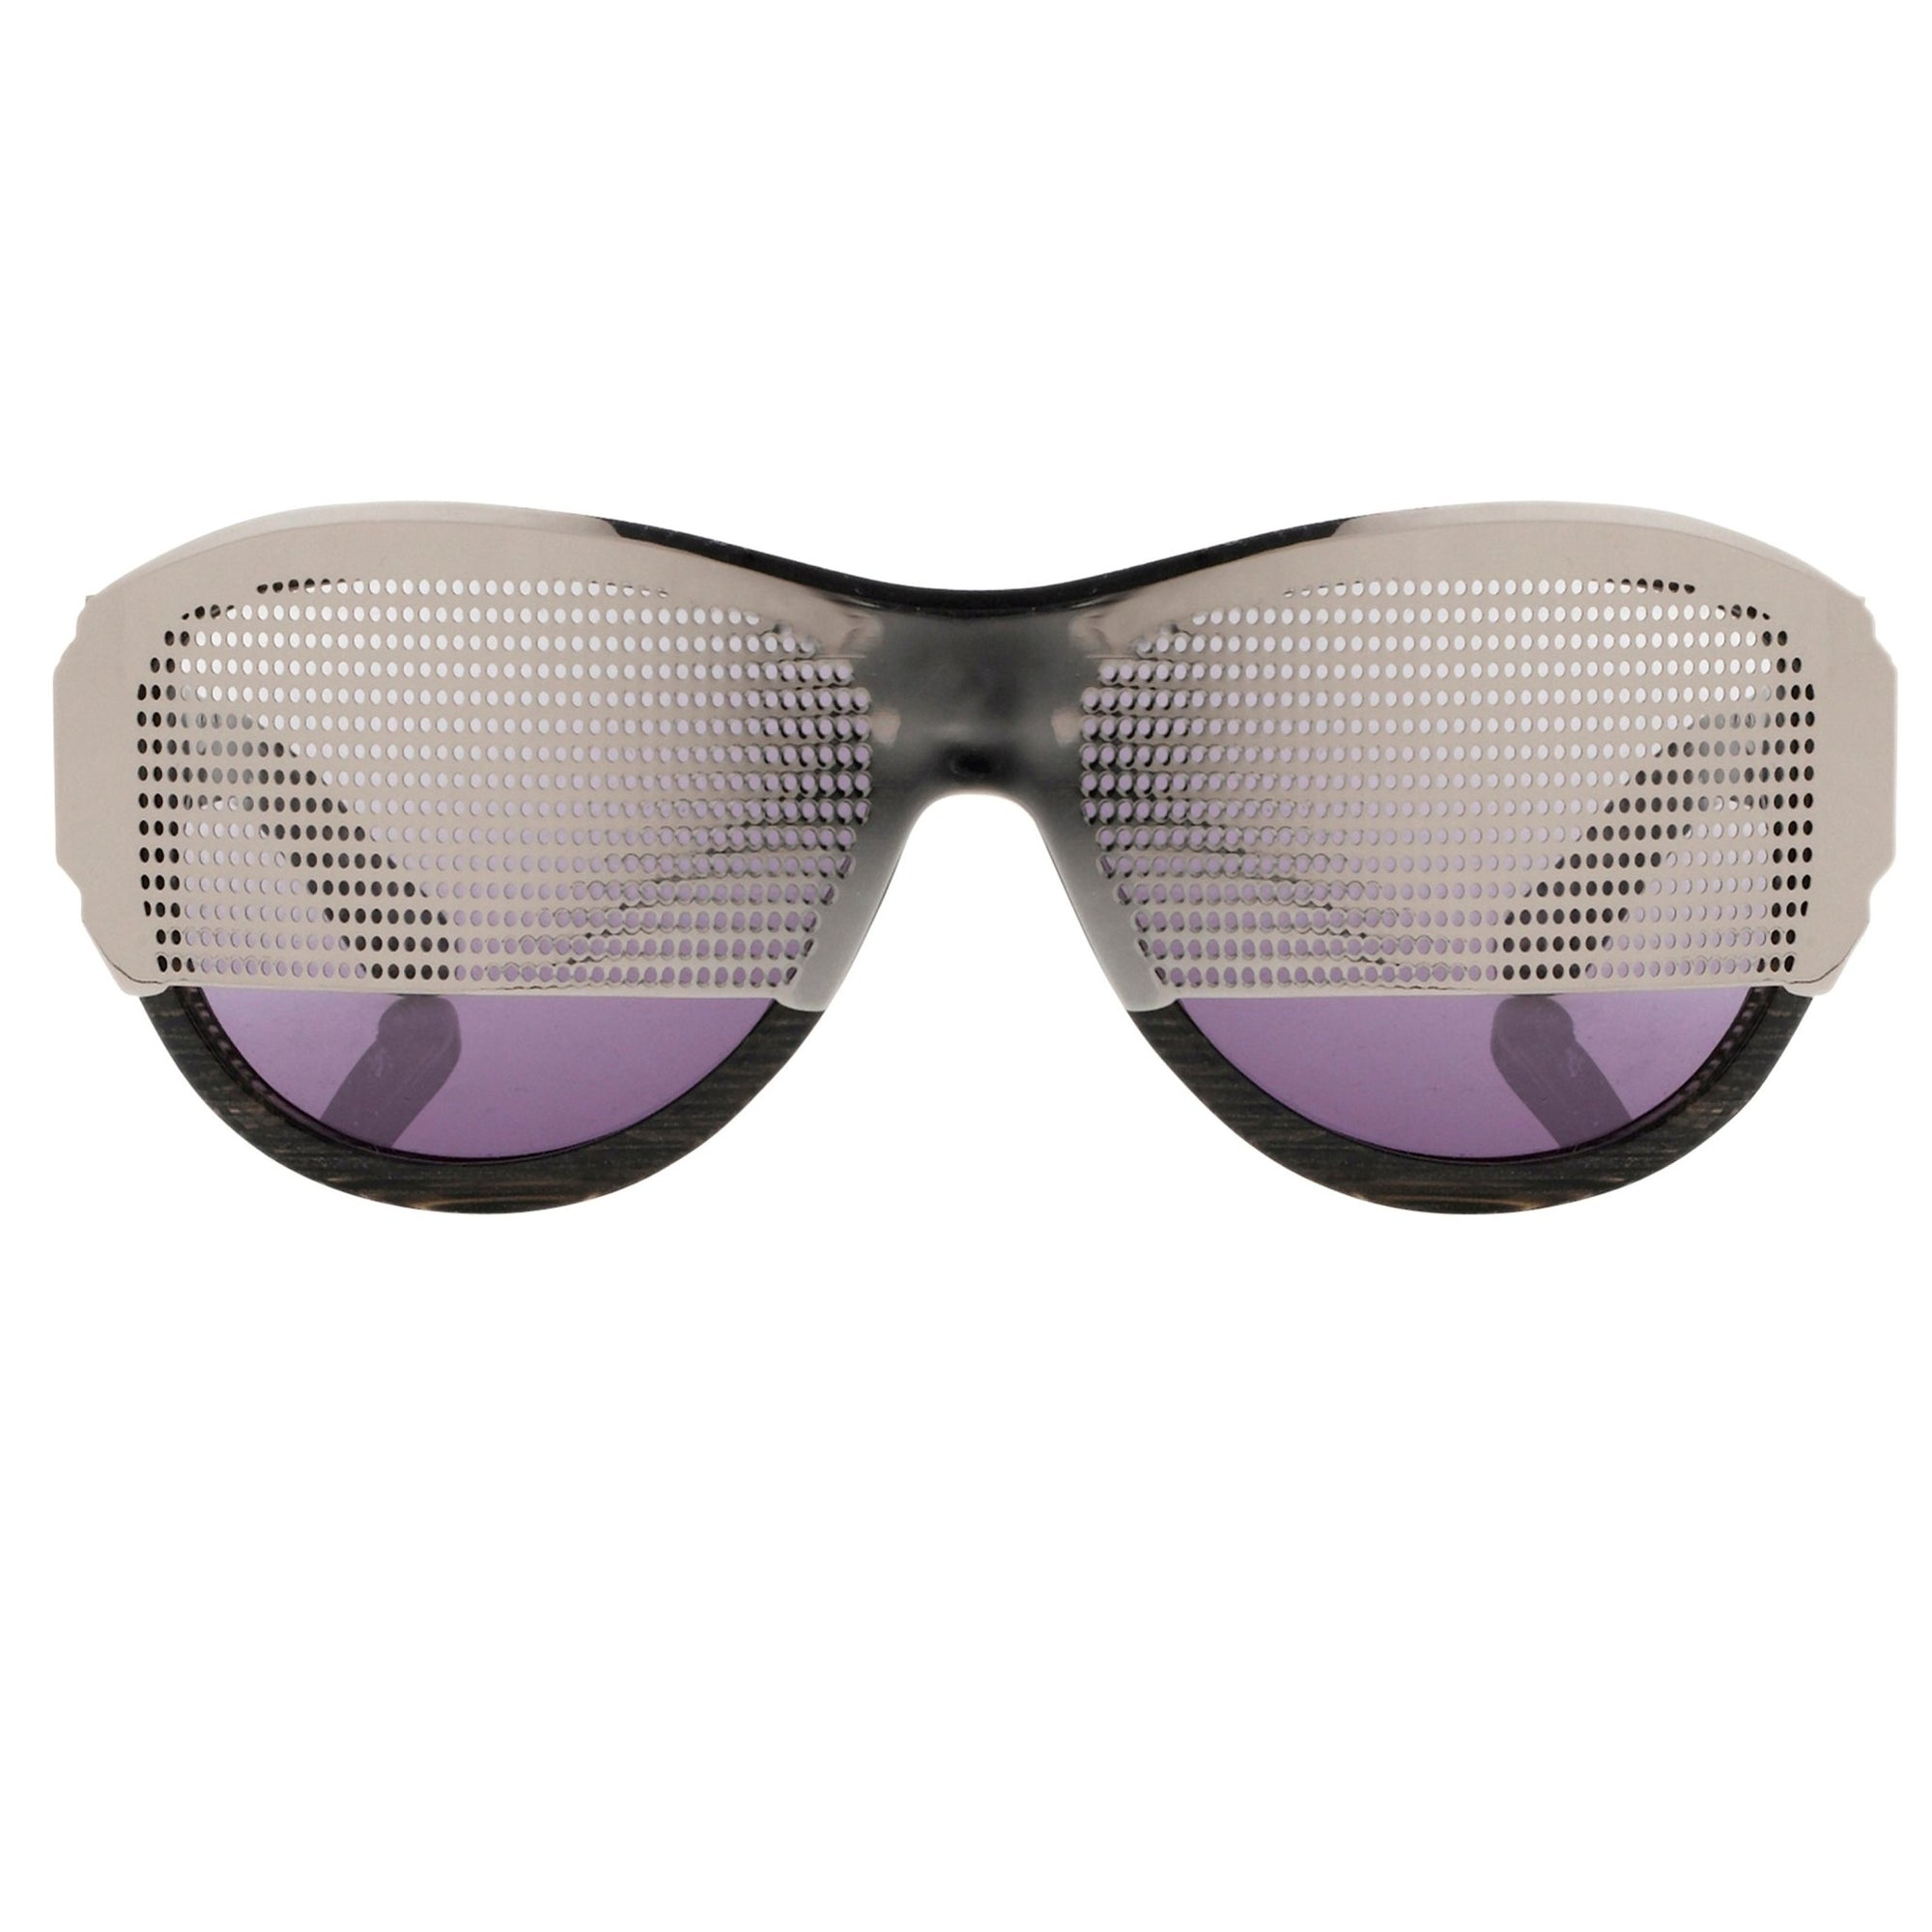 Todd Lynn Sunglasses Special Frame Silver/Black and Purple Lenses - TL2C1SUN - Watches & Crystals